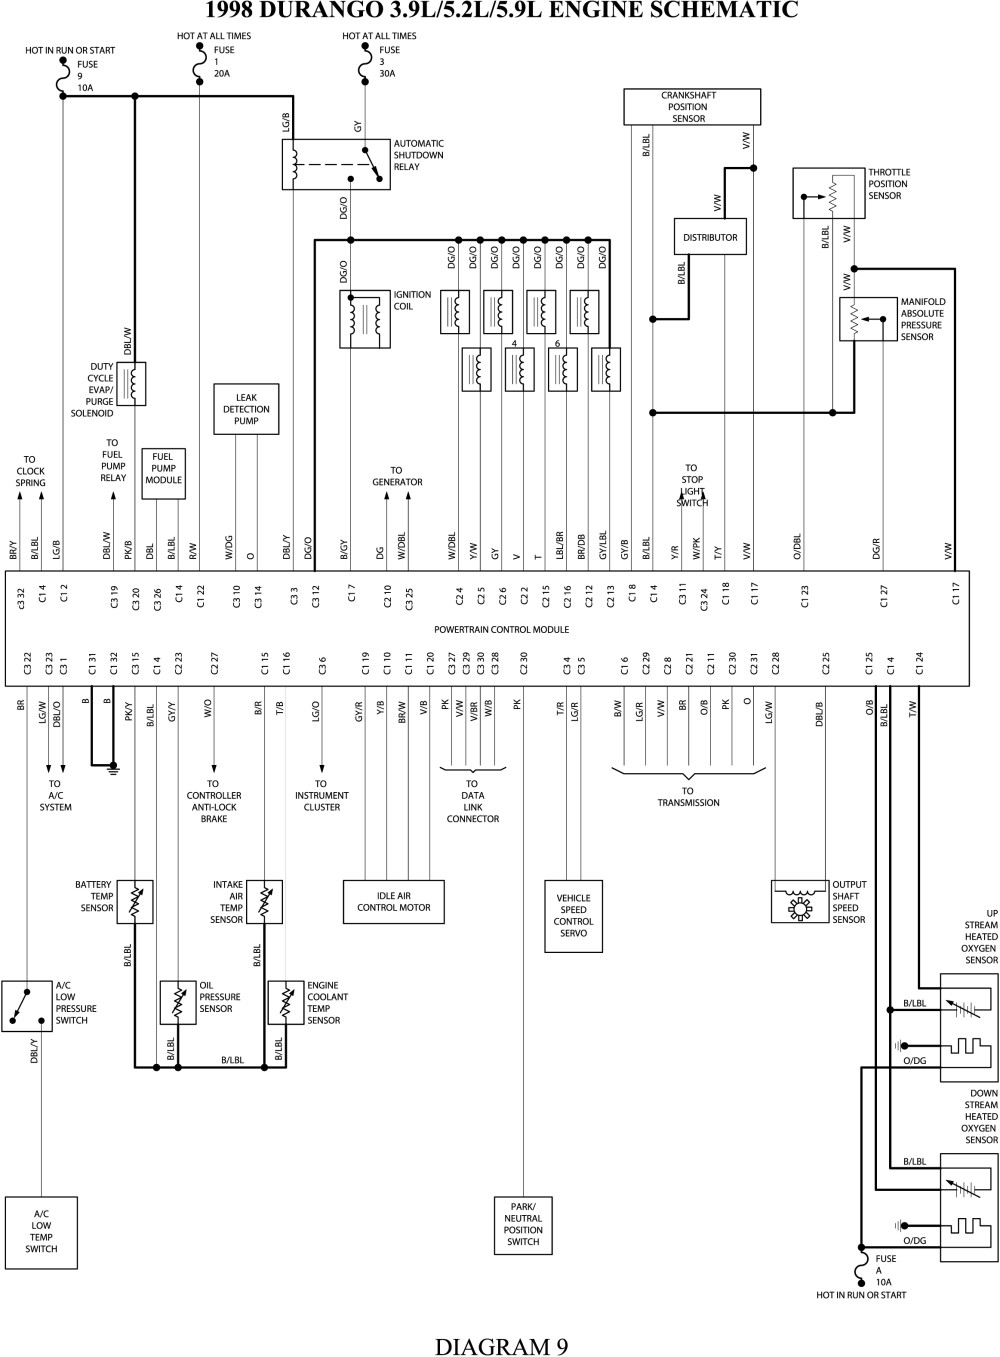 2006 dodge dakota stereo wiring diagram